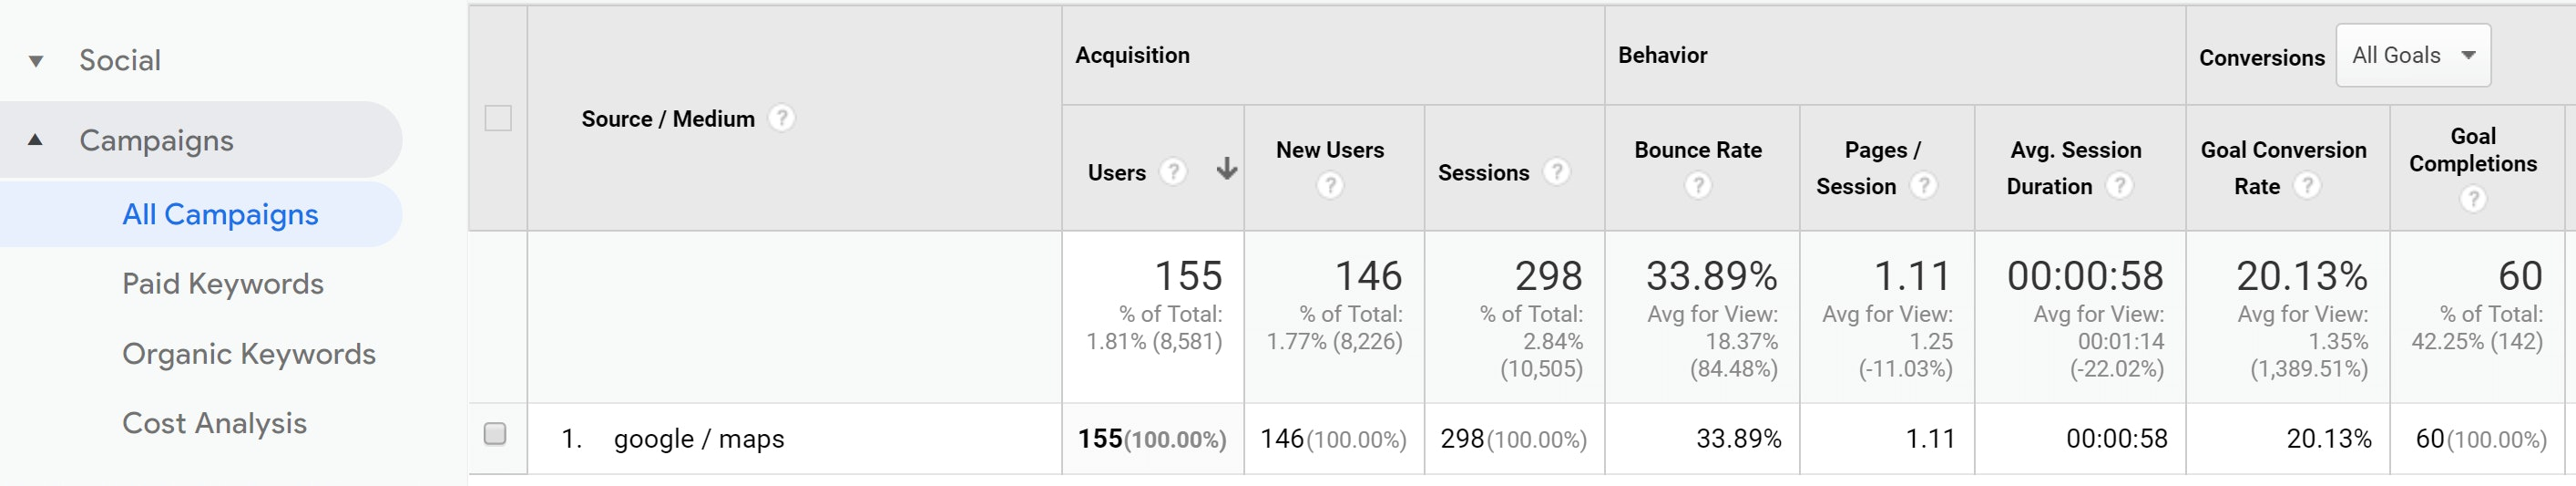 GoogleAnalytics-UTMTracking